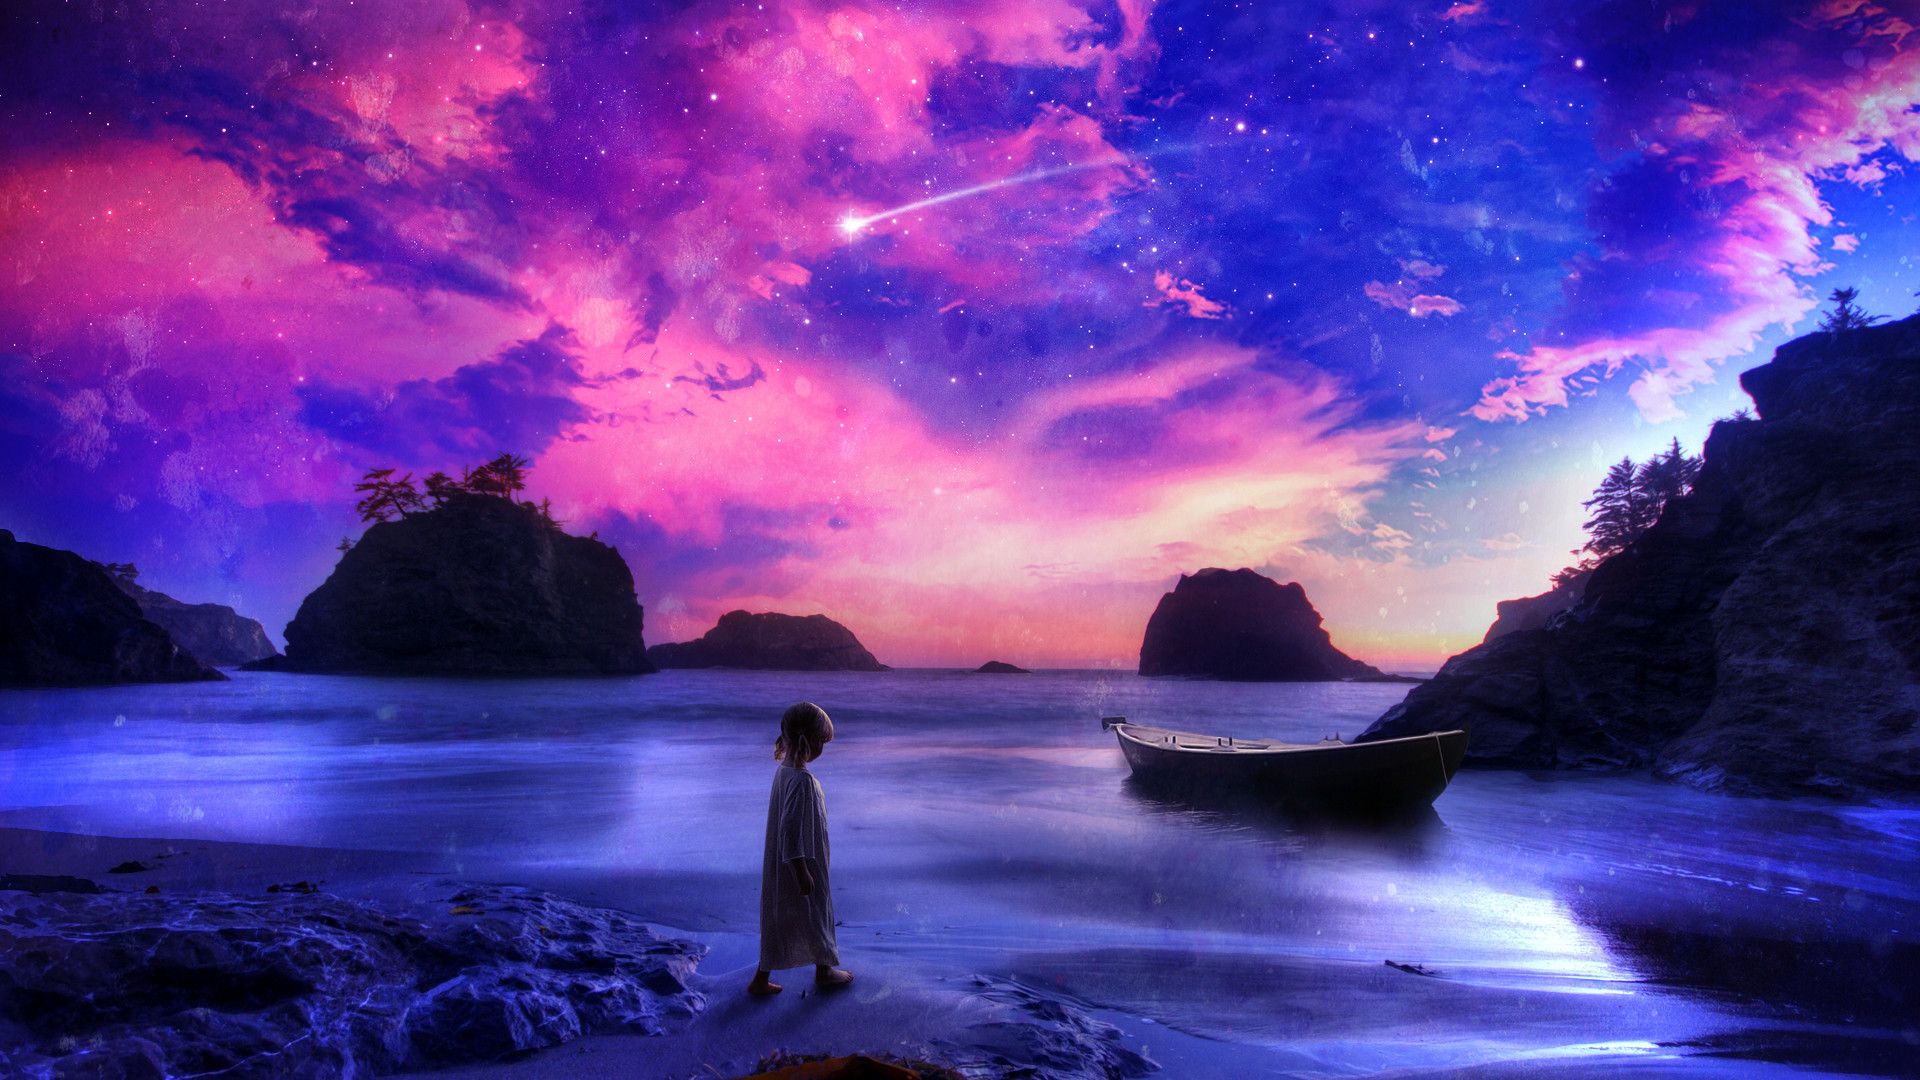 1920x1080 Child Shore Beach Purple Boat Stars Shooting Star Fantasy Ocean Sea Babies  Children Sky Clouds Cartoon Landscapes Wallpaper At Fantasy Wallpapers